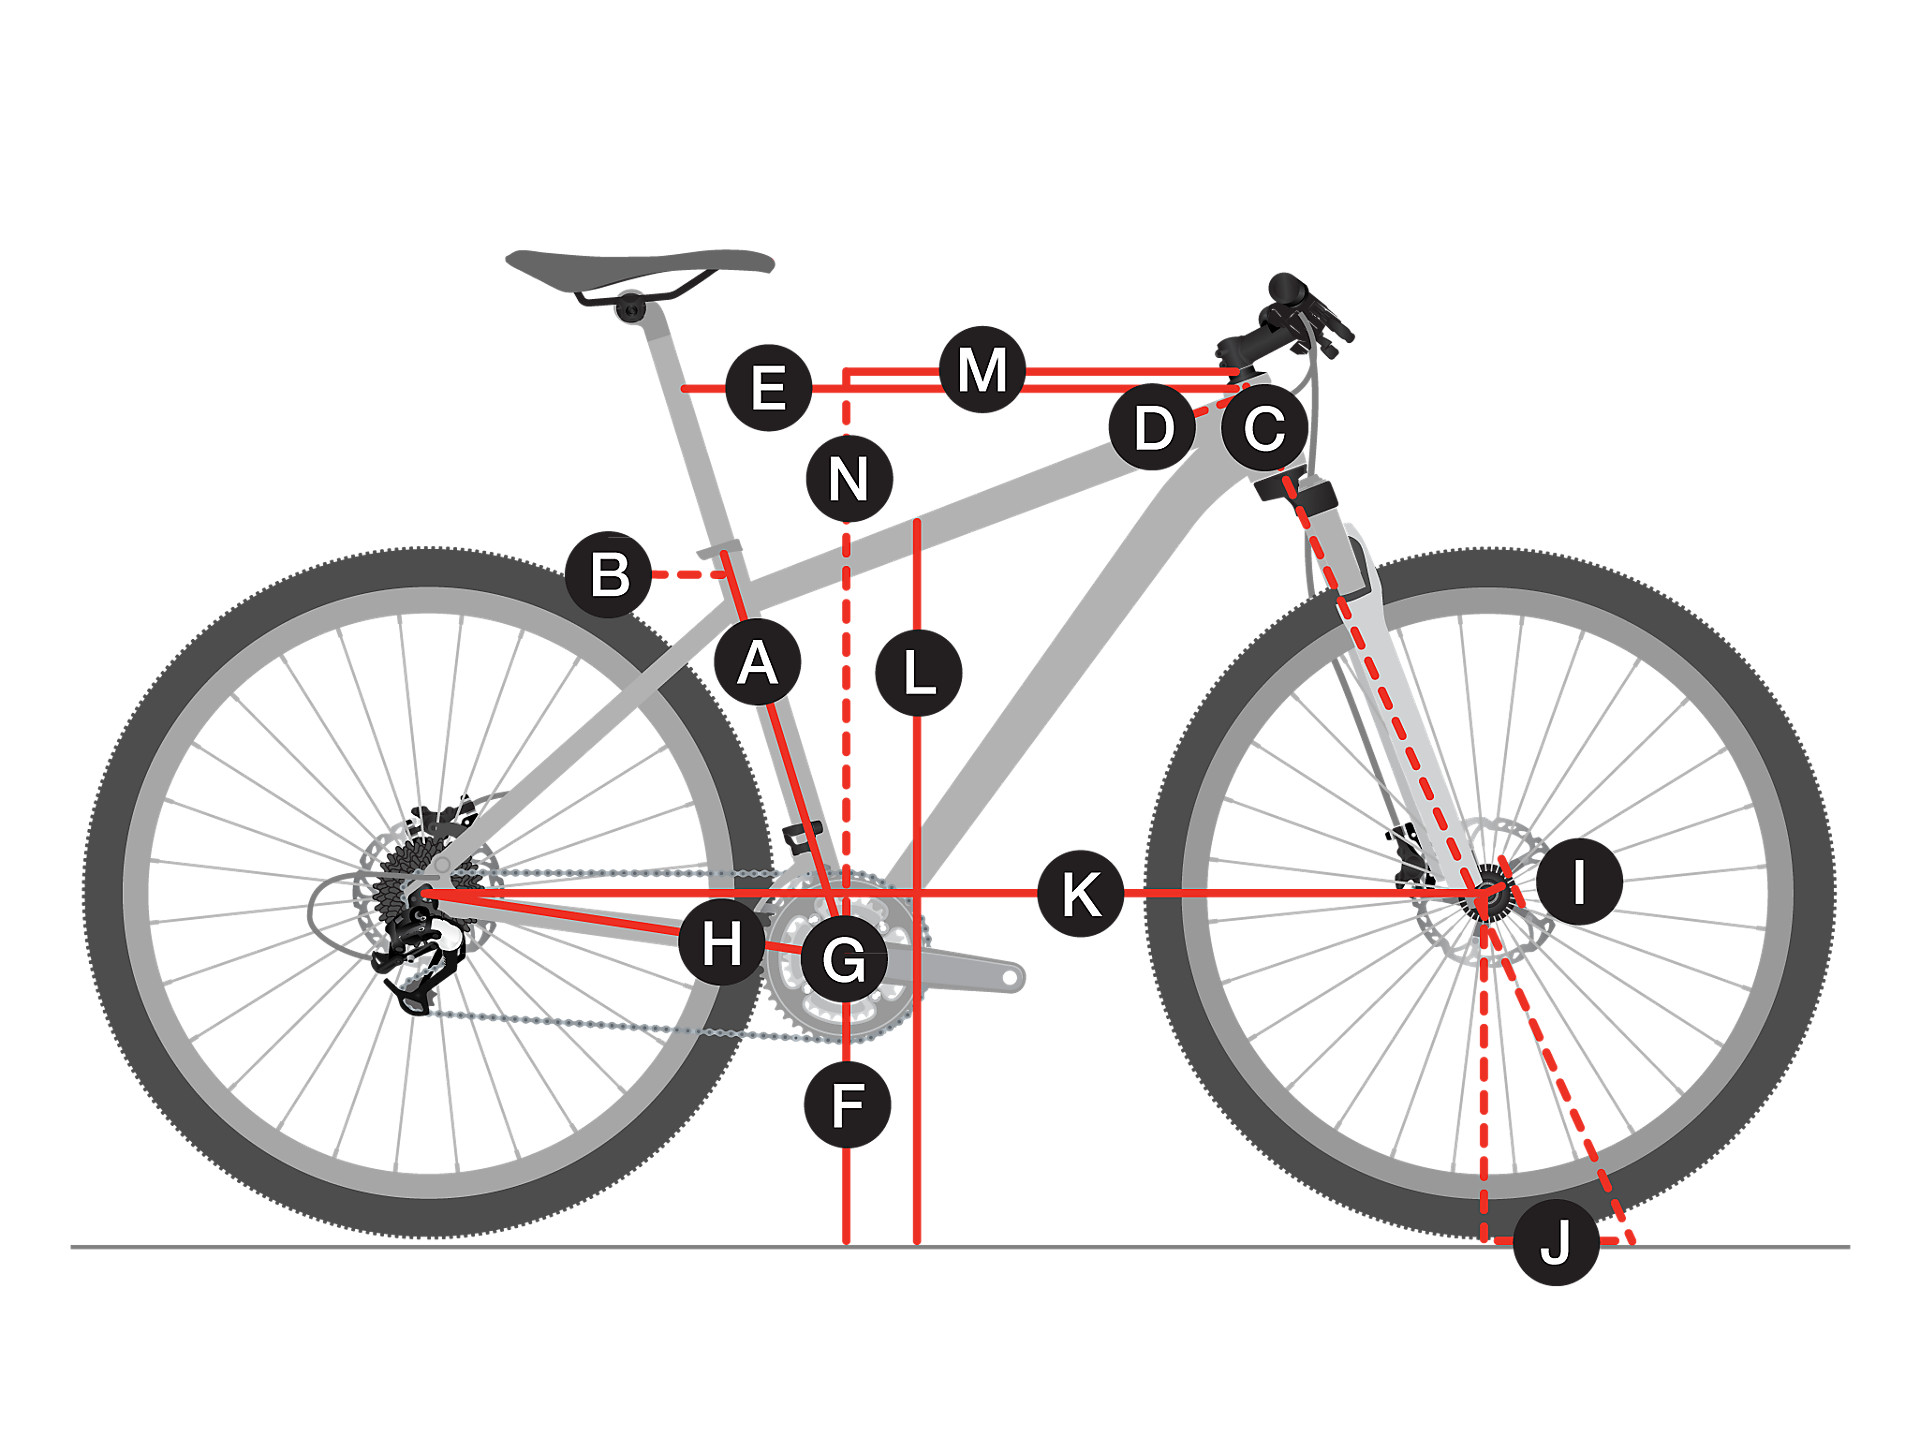 Geometry_14784_29er_Hardtail?$responsive-pjpg$&cache=on,on&wid=1920&hei=1440&fit=fit,1